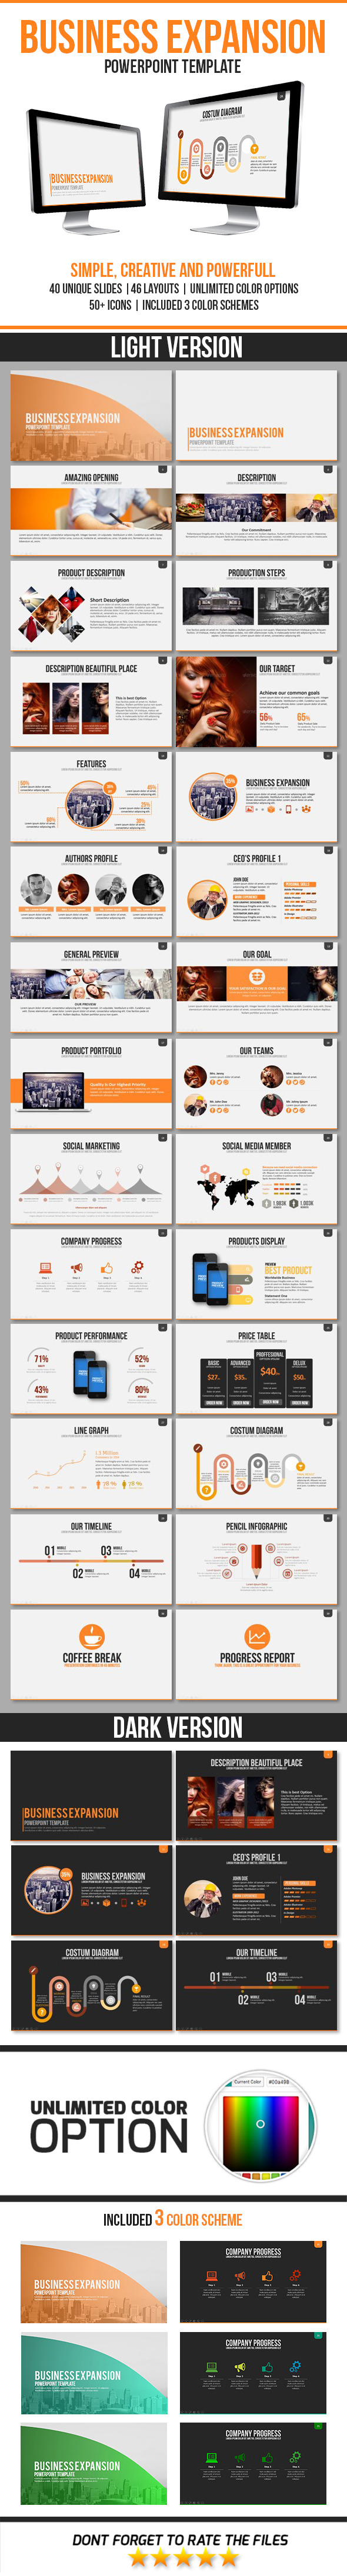 GraphicRiver Business Expansion PowerPoint Template 11469964